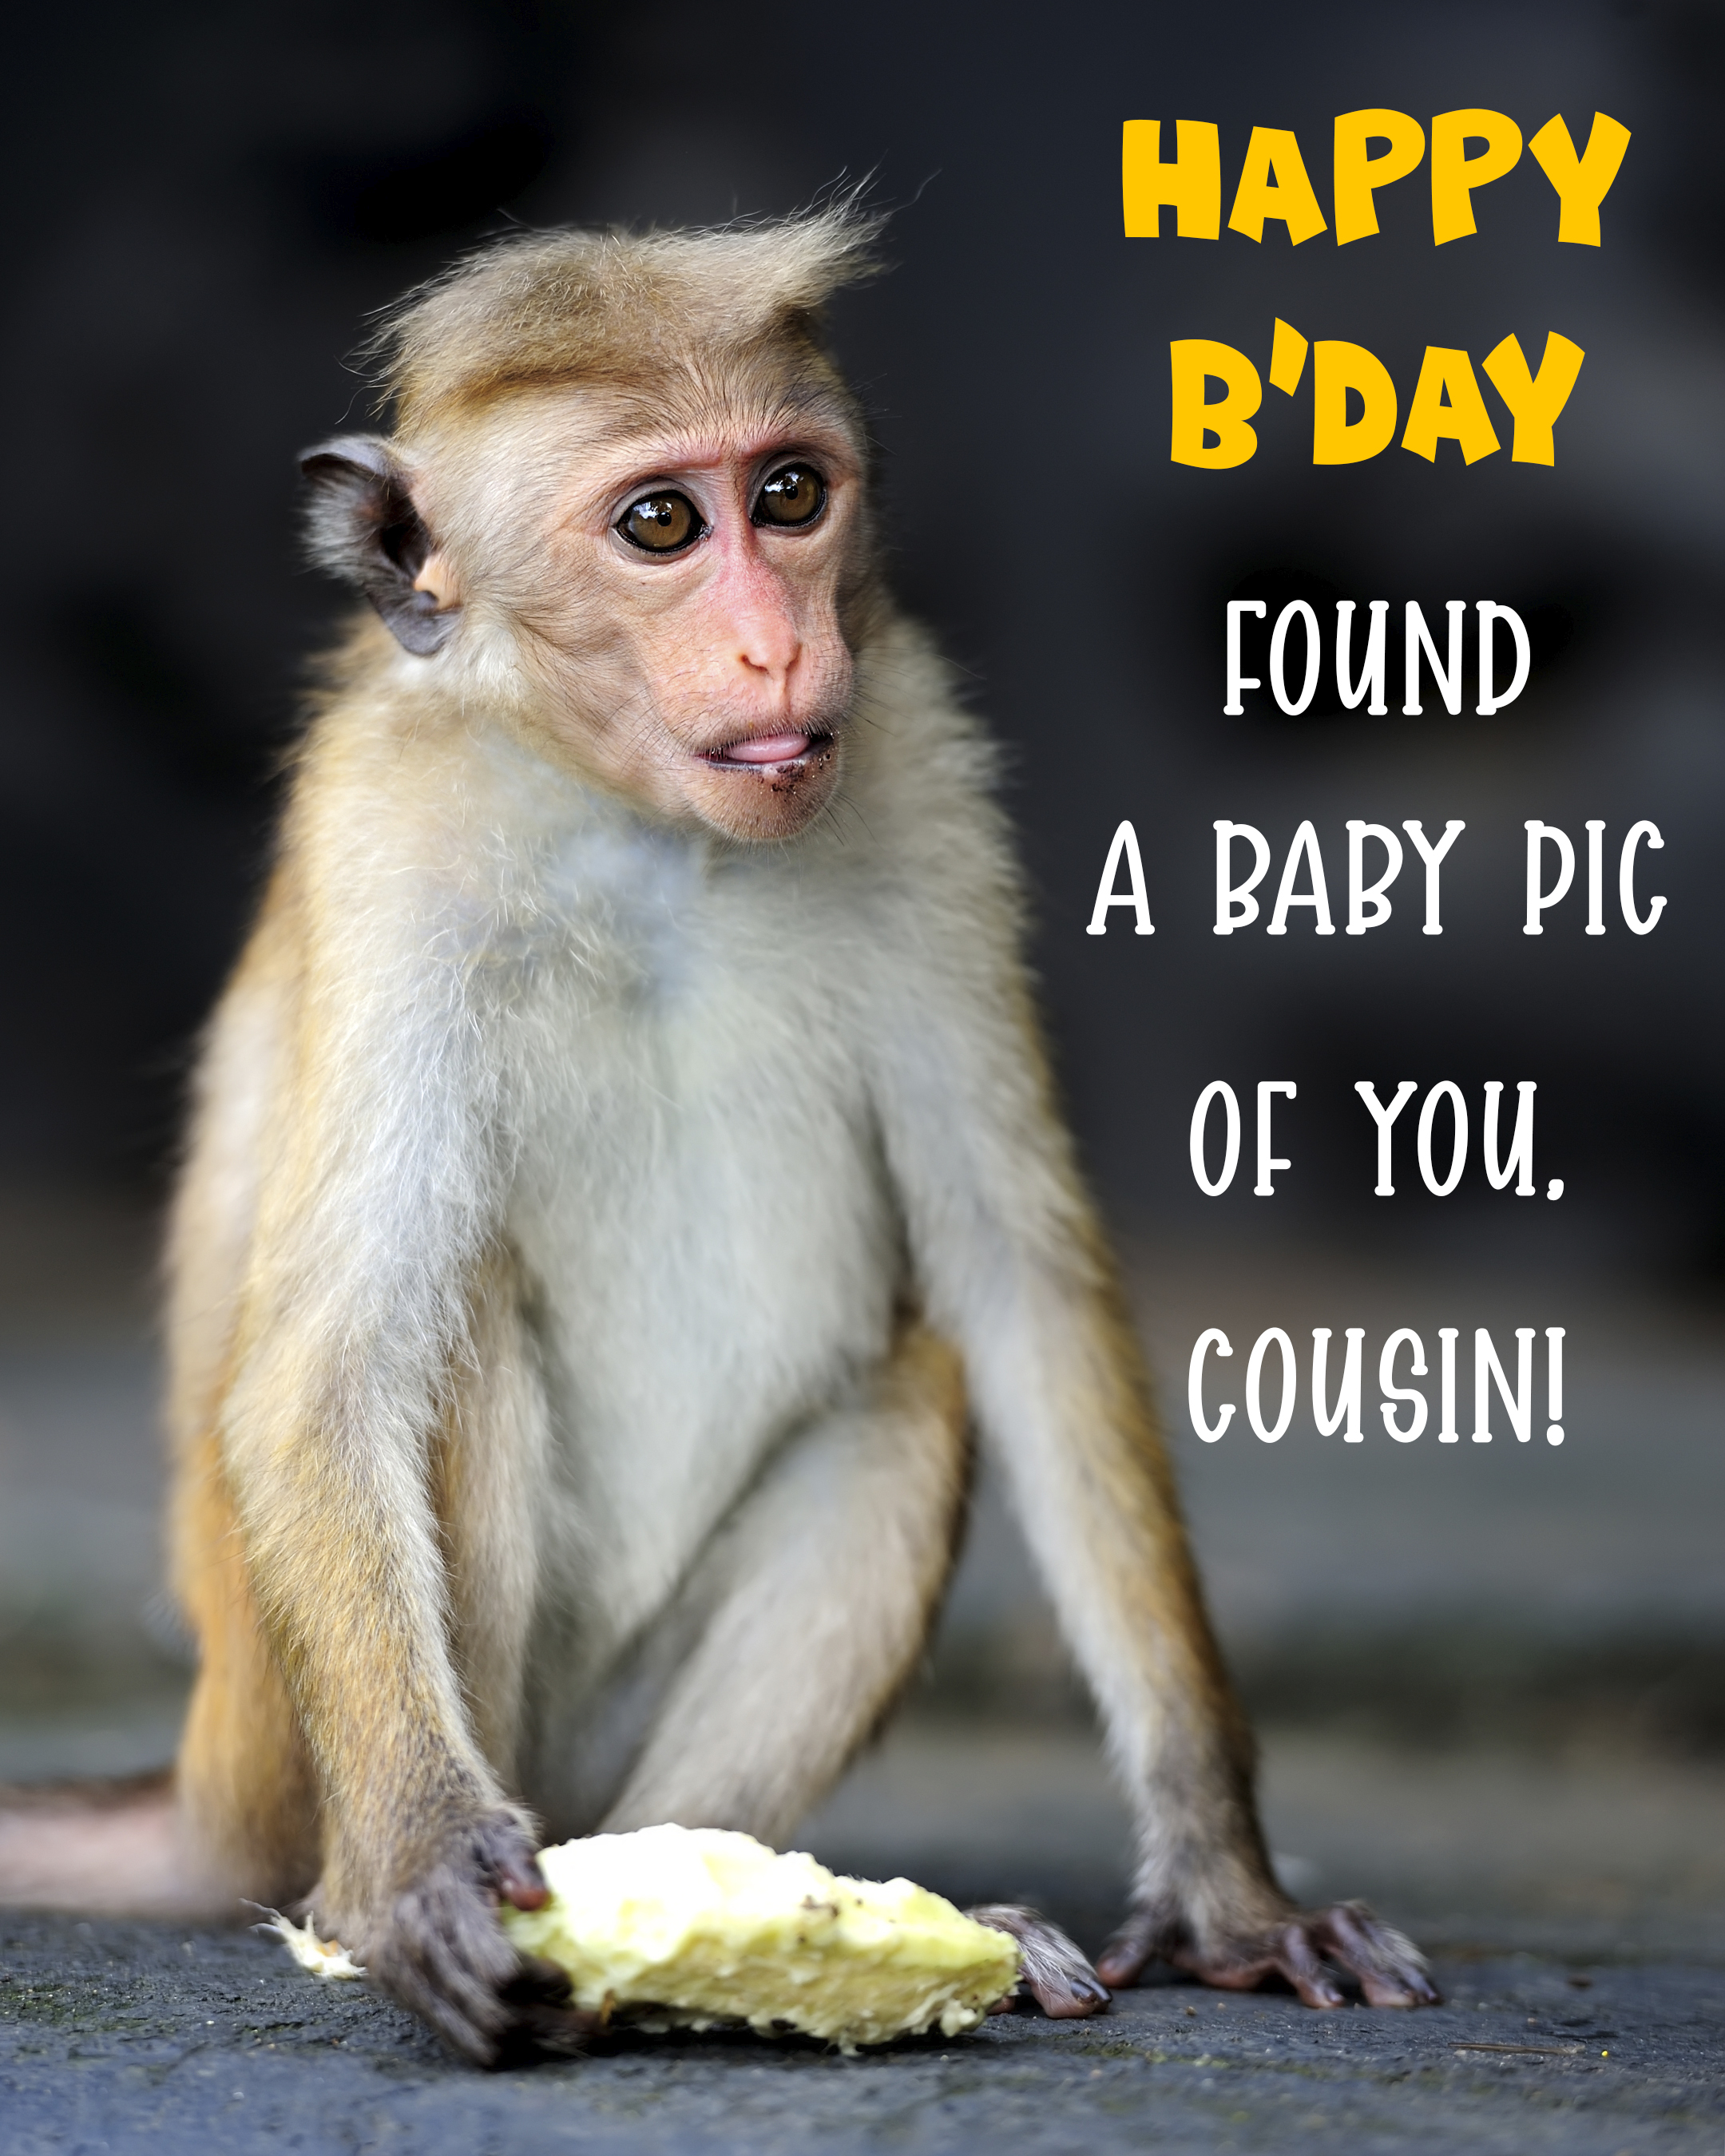 Free Funny Happy Birthday Image For Cousin With a Monkey - birthdayimg.com